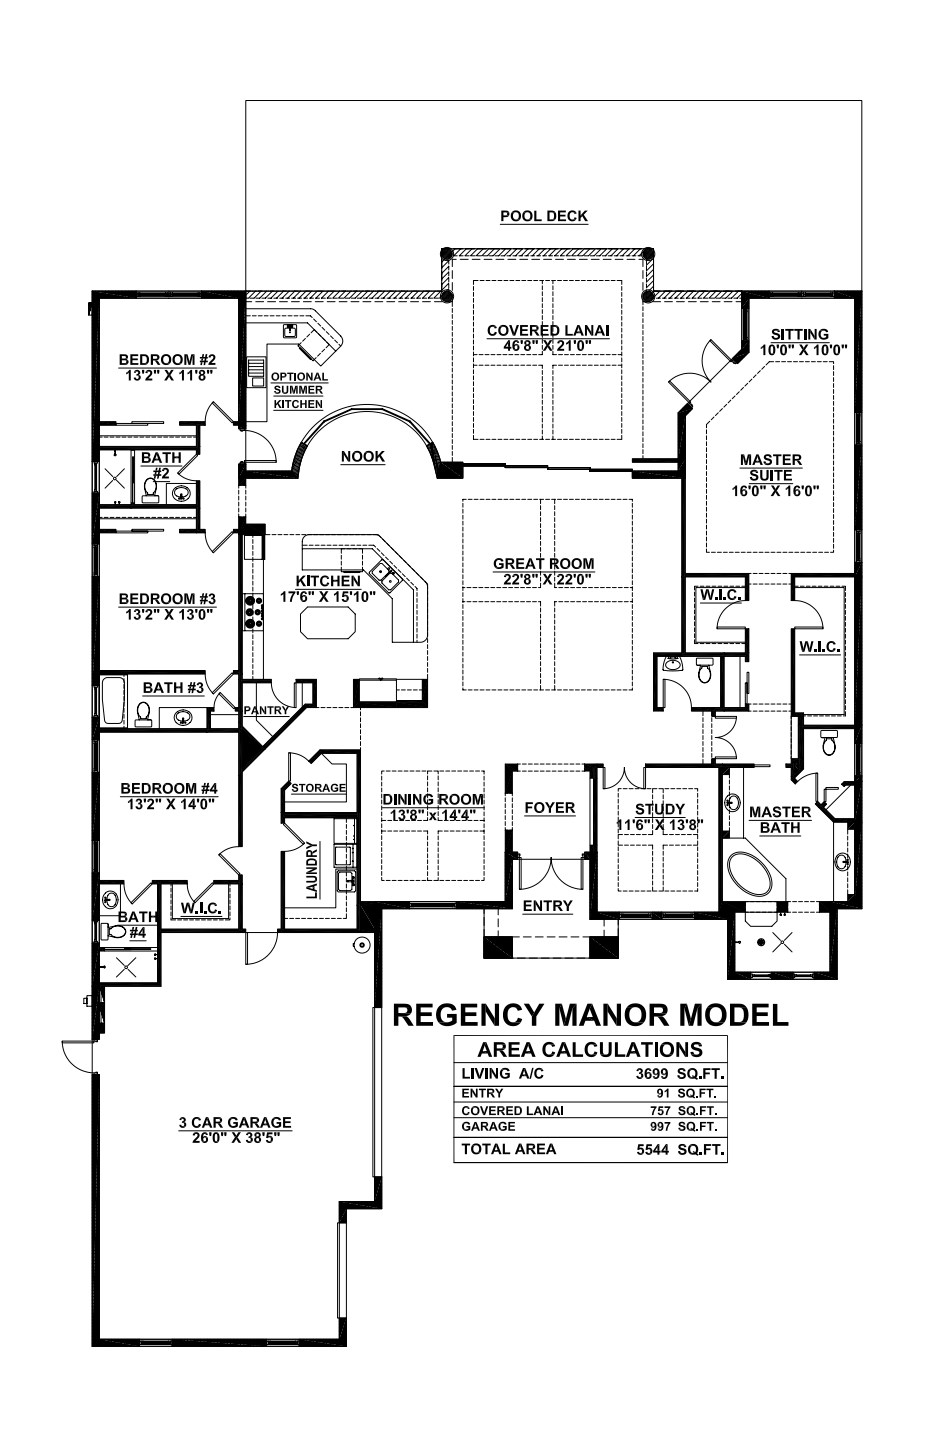 Stock Signature Homes Twin Eagles Regency Manor Floor Plan